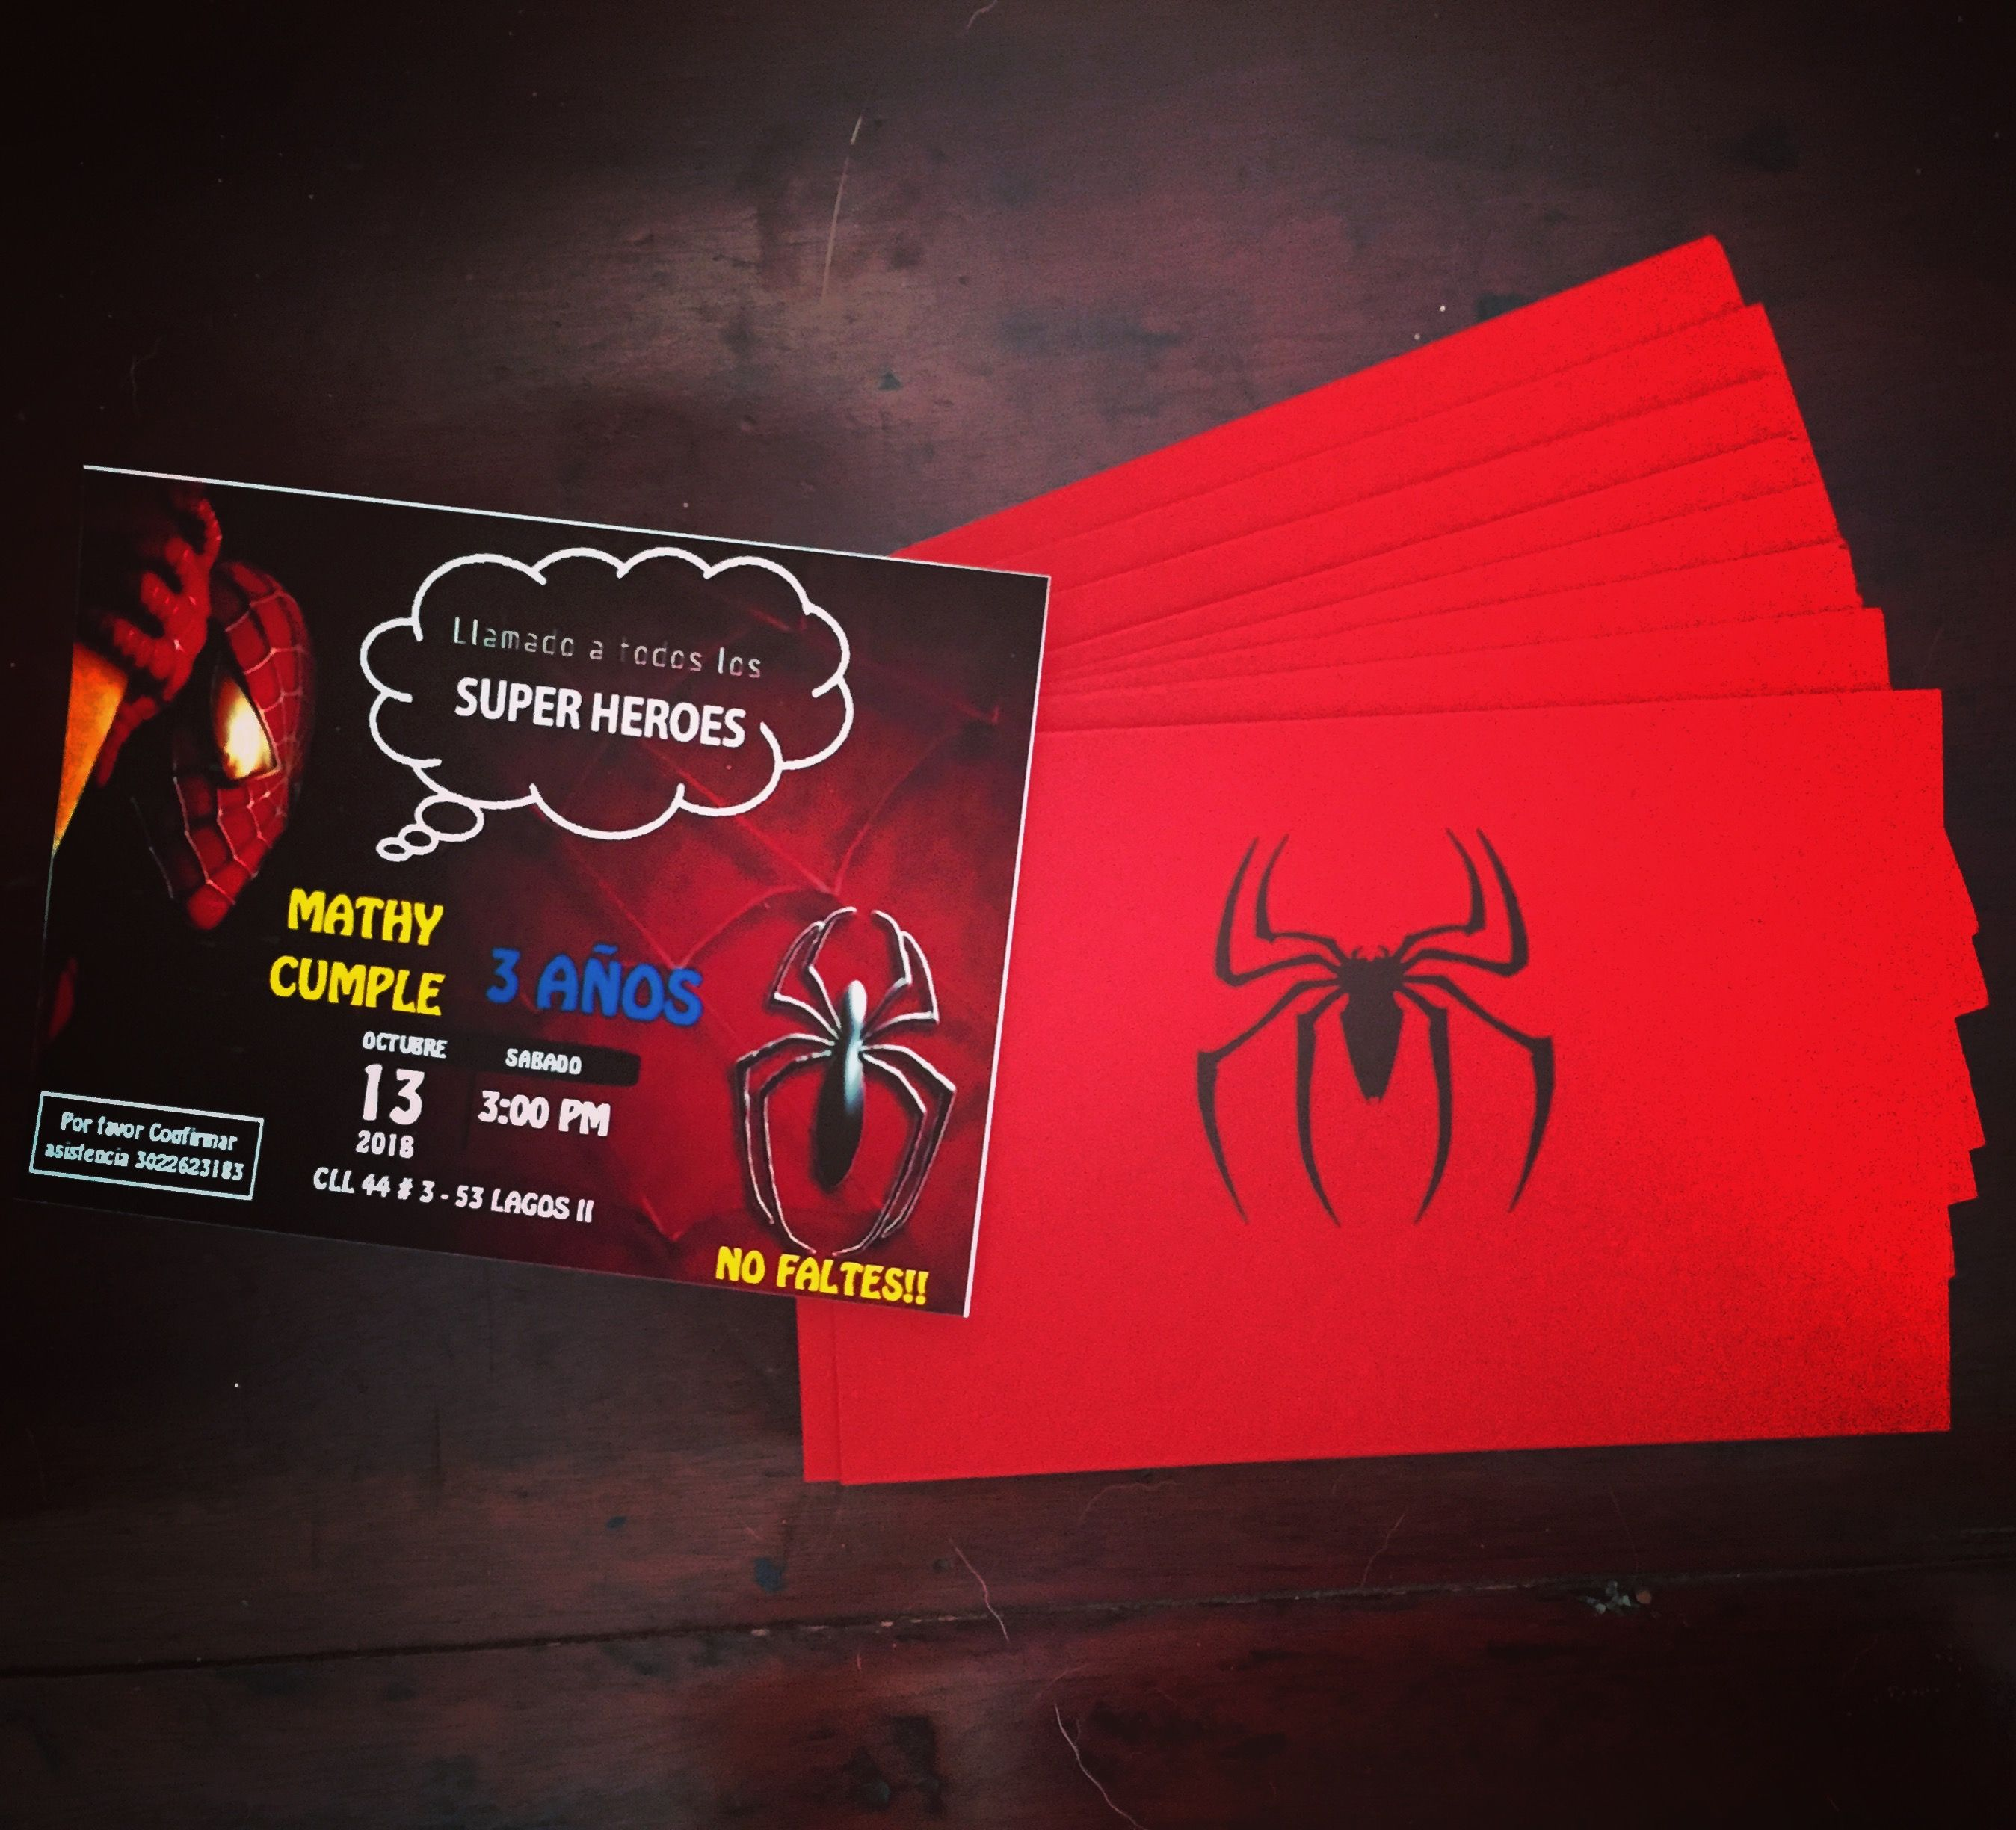 Tarjetas Invitacion Spiderman Invitacion De Spiderman